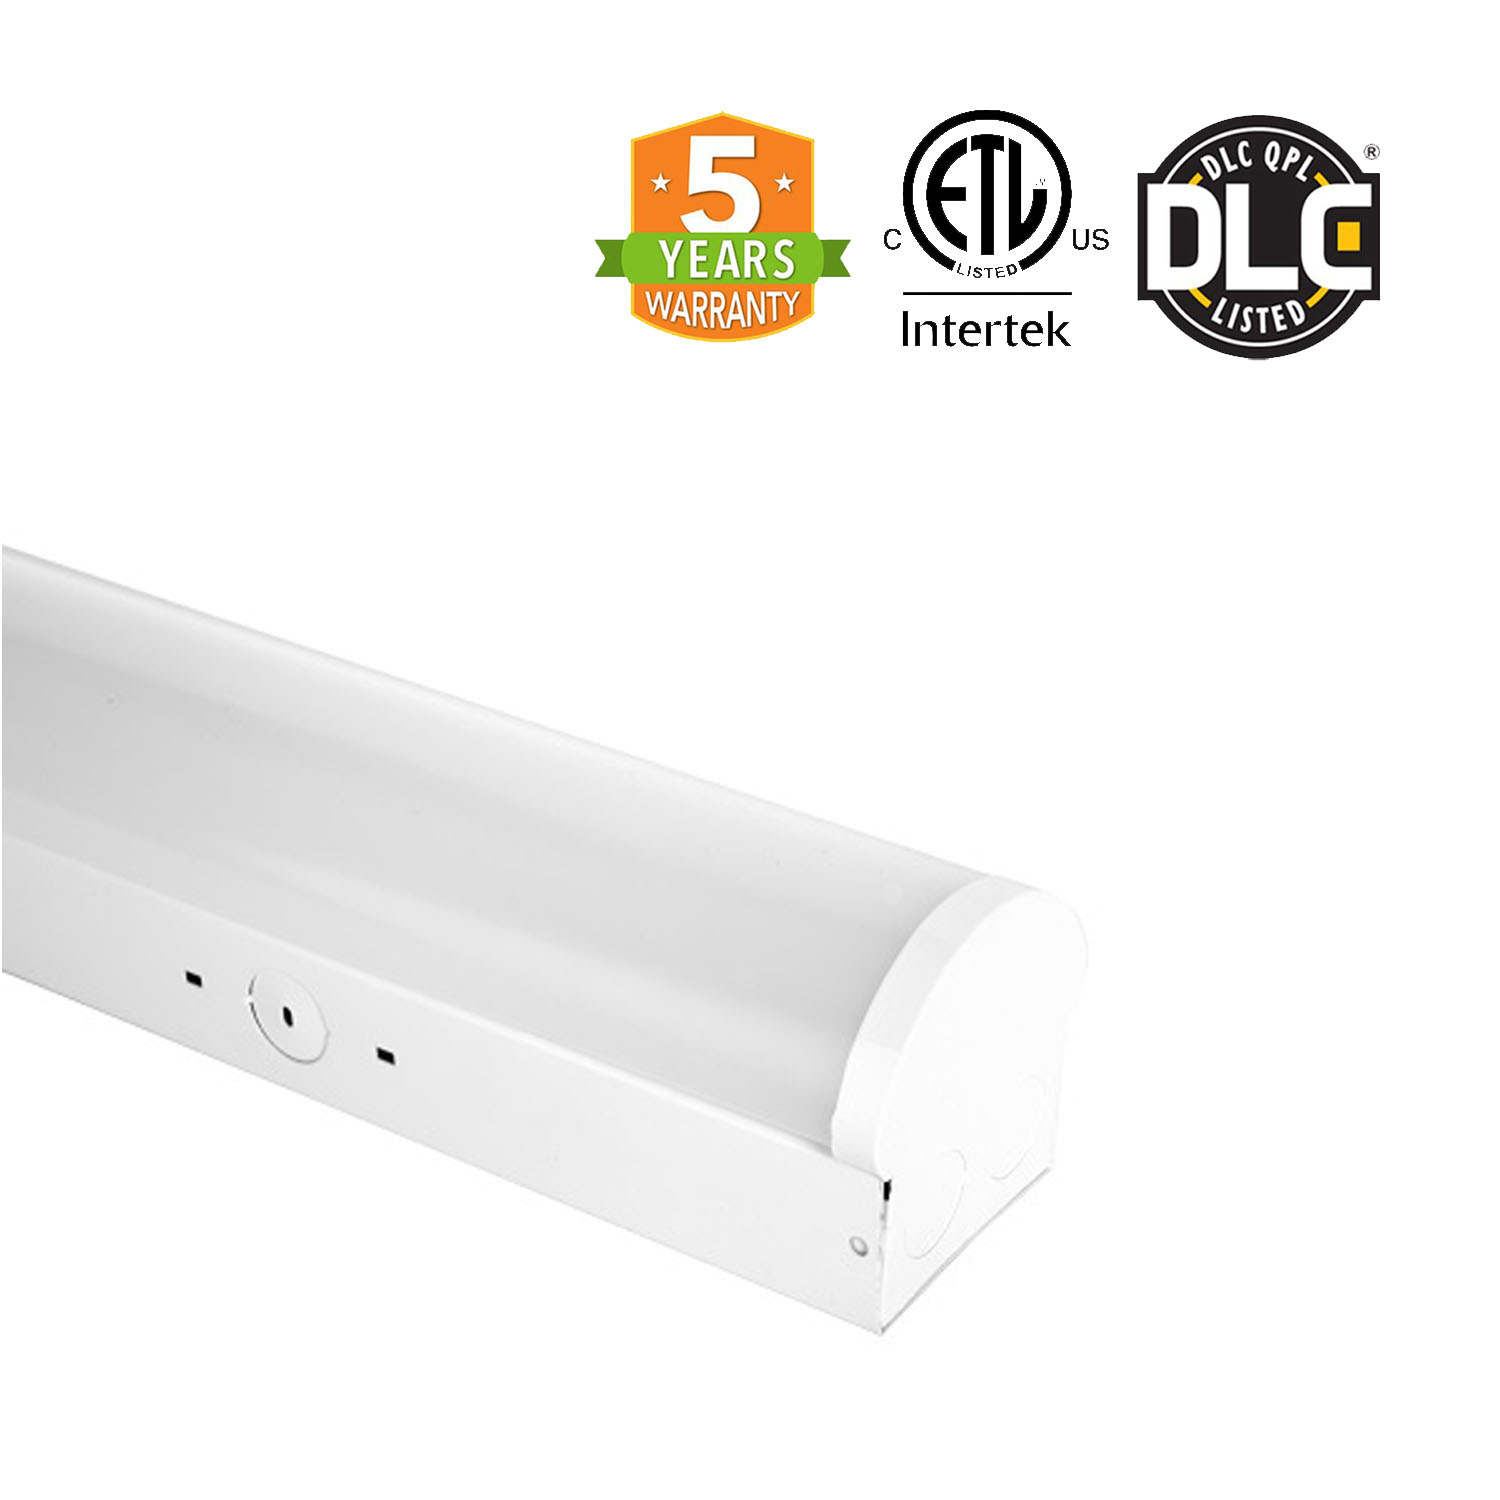 8 Foot Linear Strip $98.10 - 4 Foot also available for $67.50